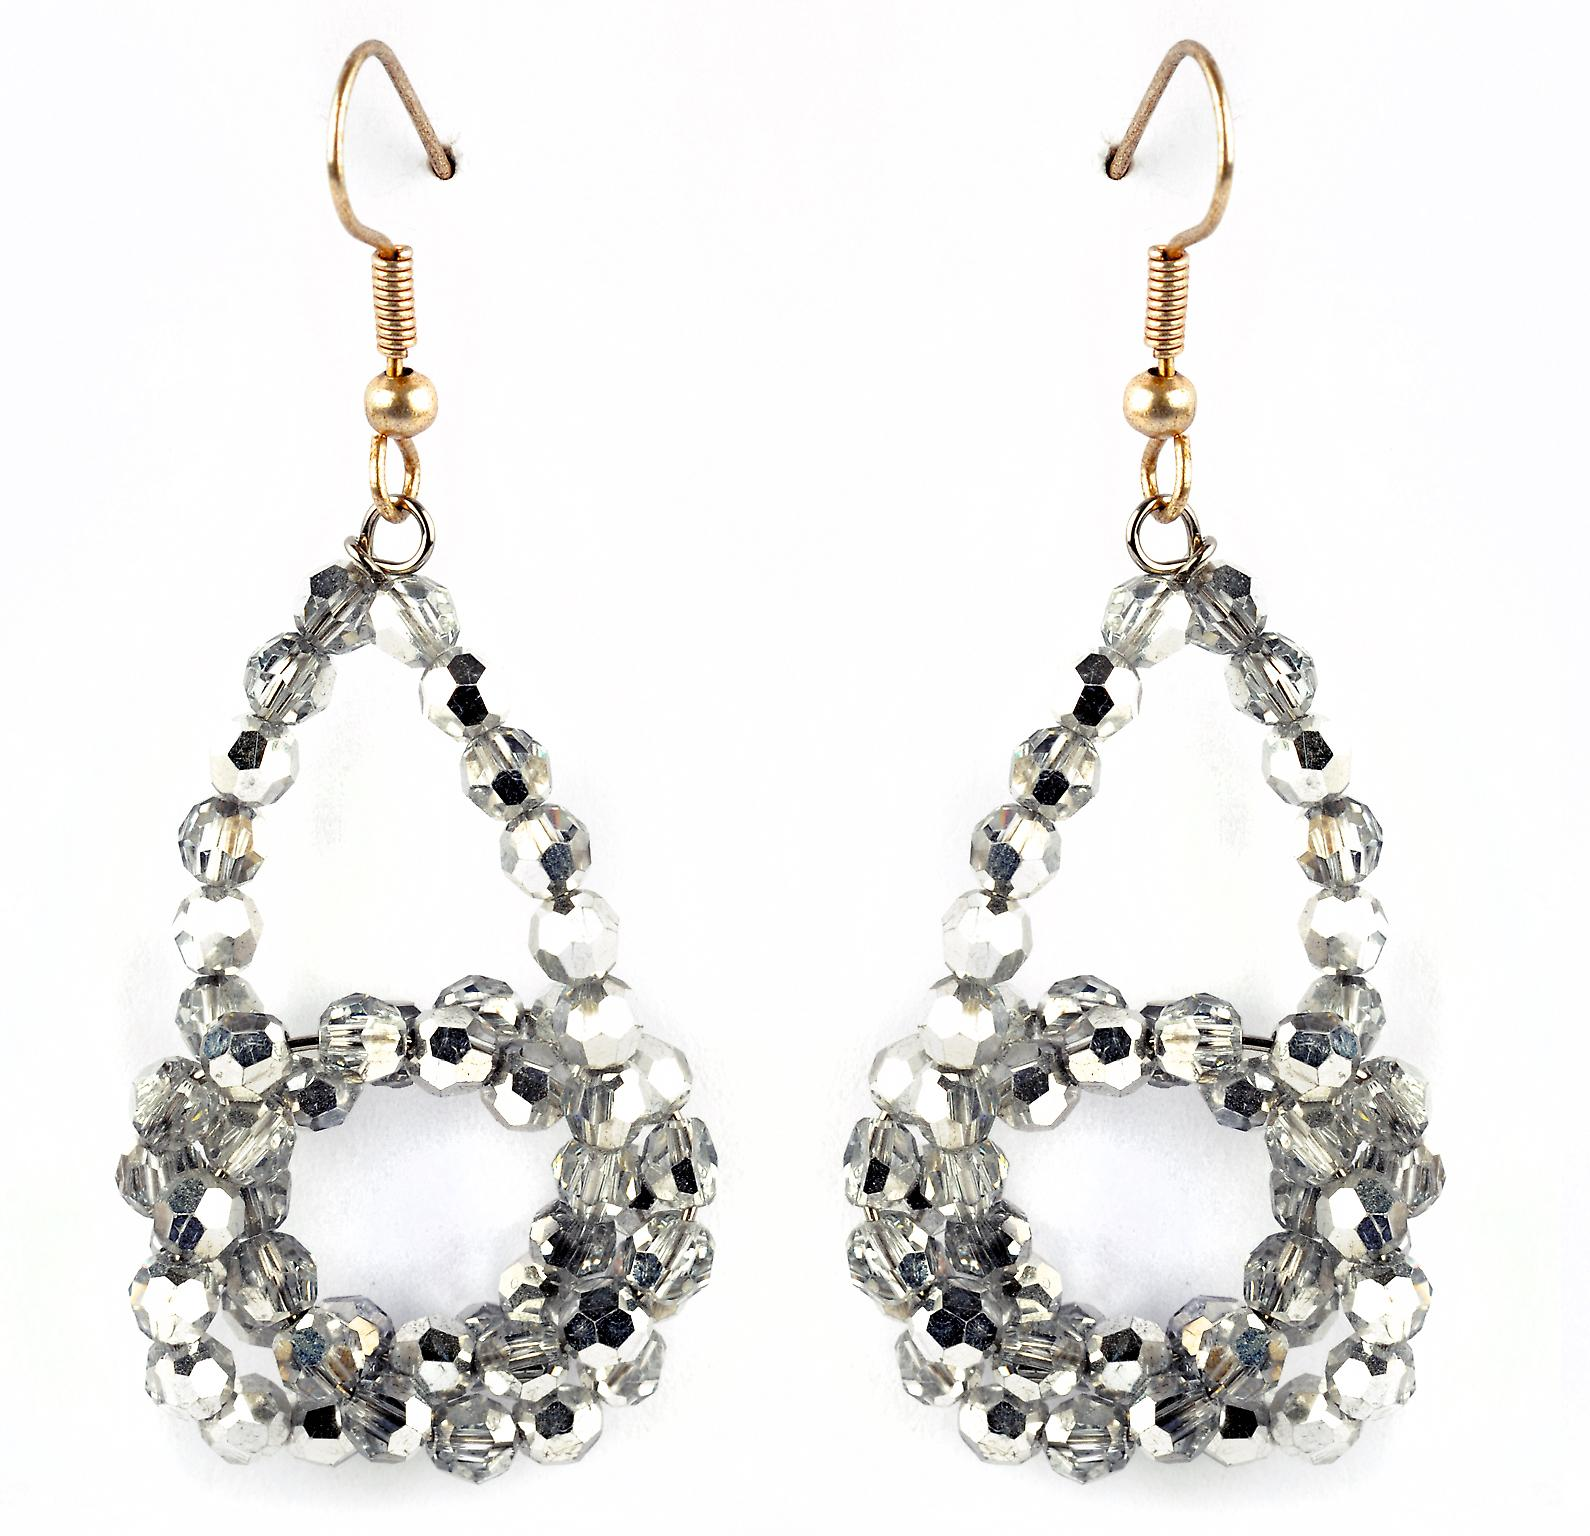 Waooh - Fashion Jewellery - WJ0747 - On Earrings with Swarovski Strass Silver Chrome - Frame Colour Gold